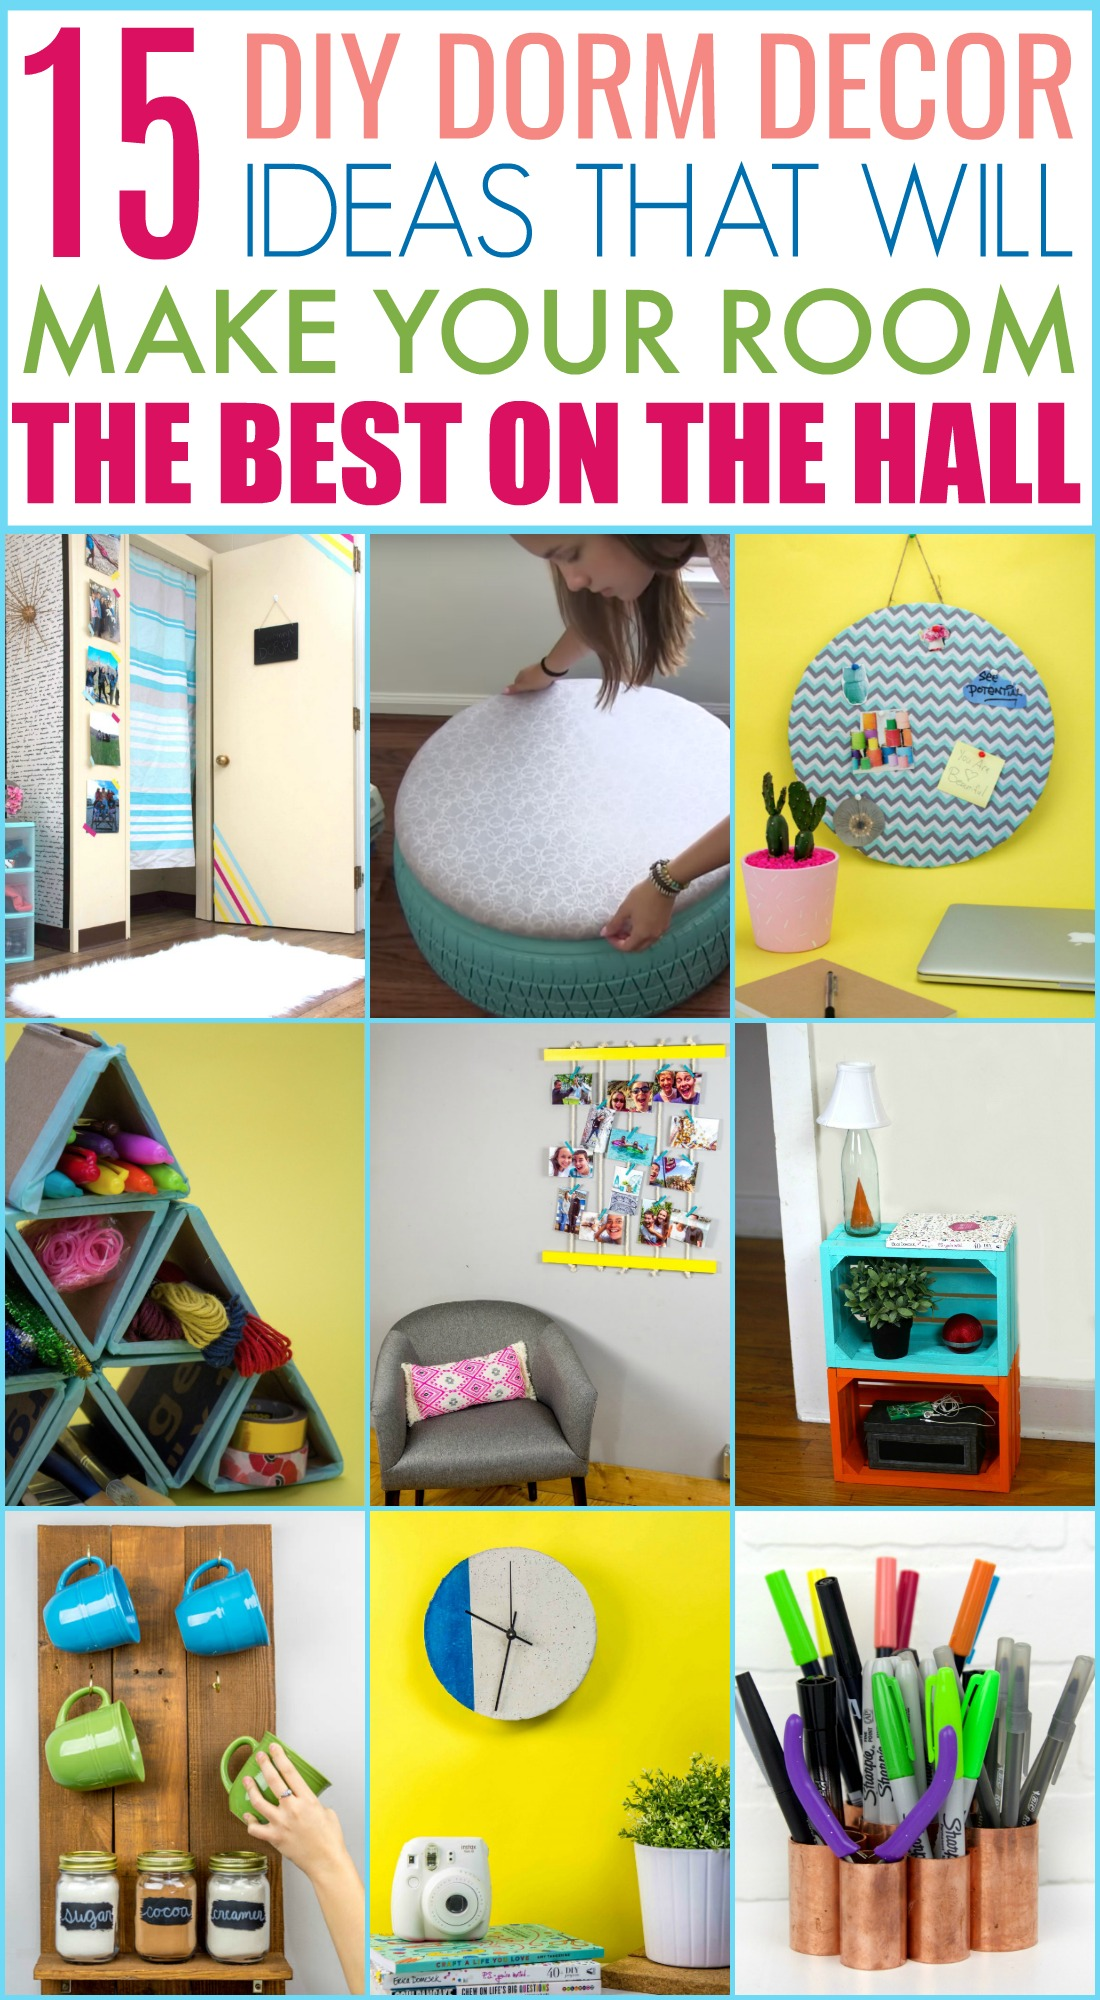 diy dorm decor ideas dorm room diy dorm organization dorm hacks